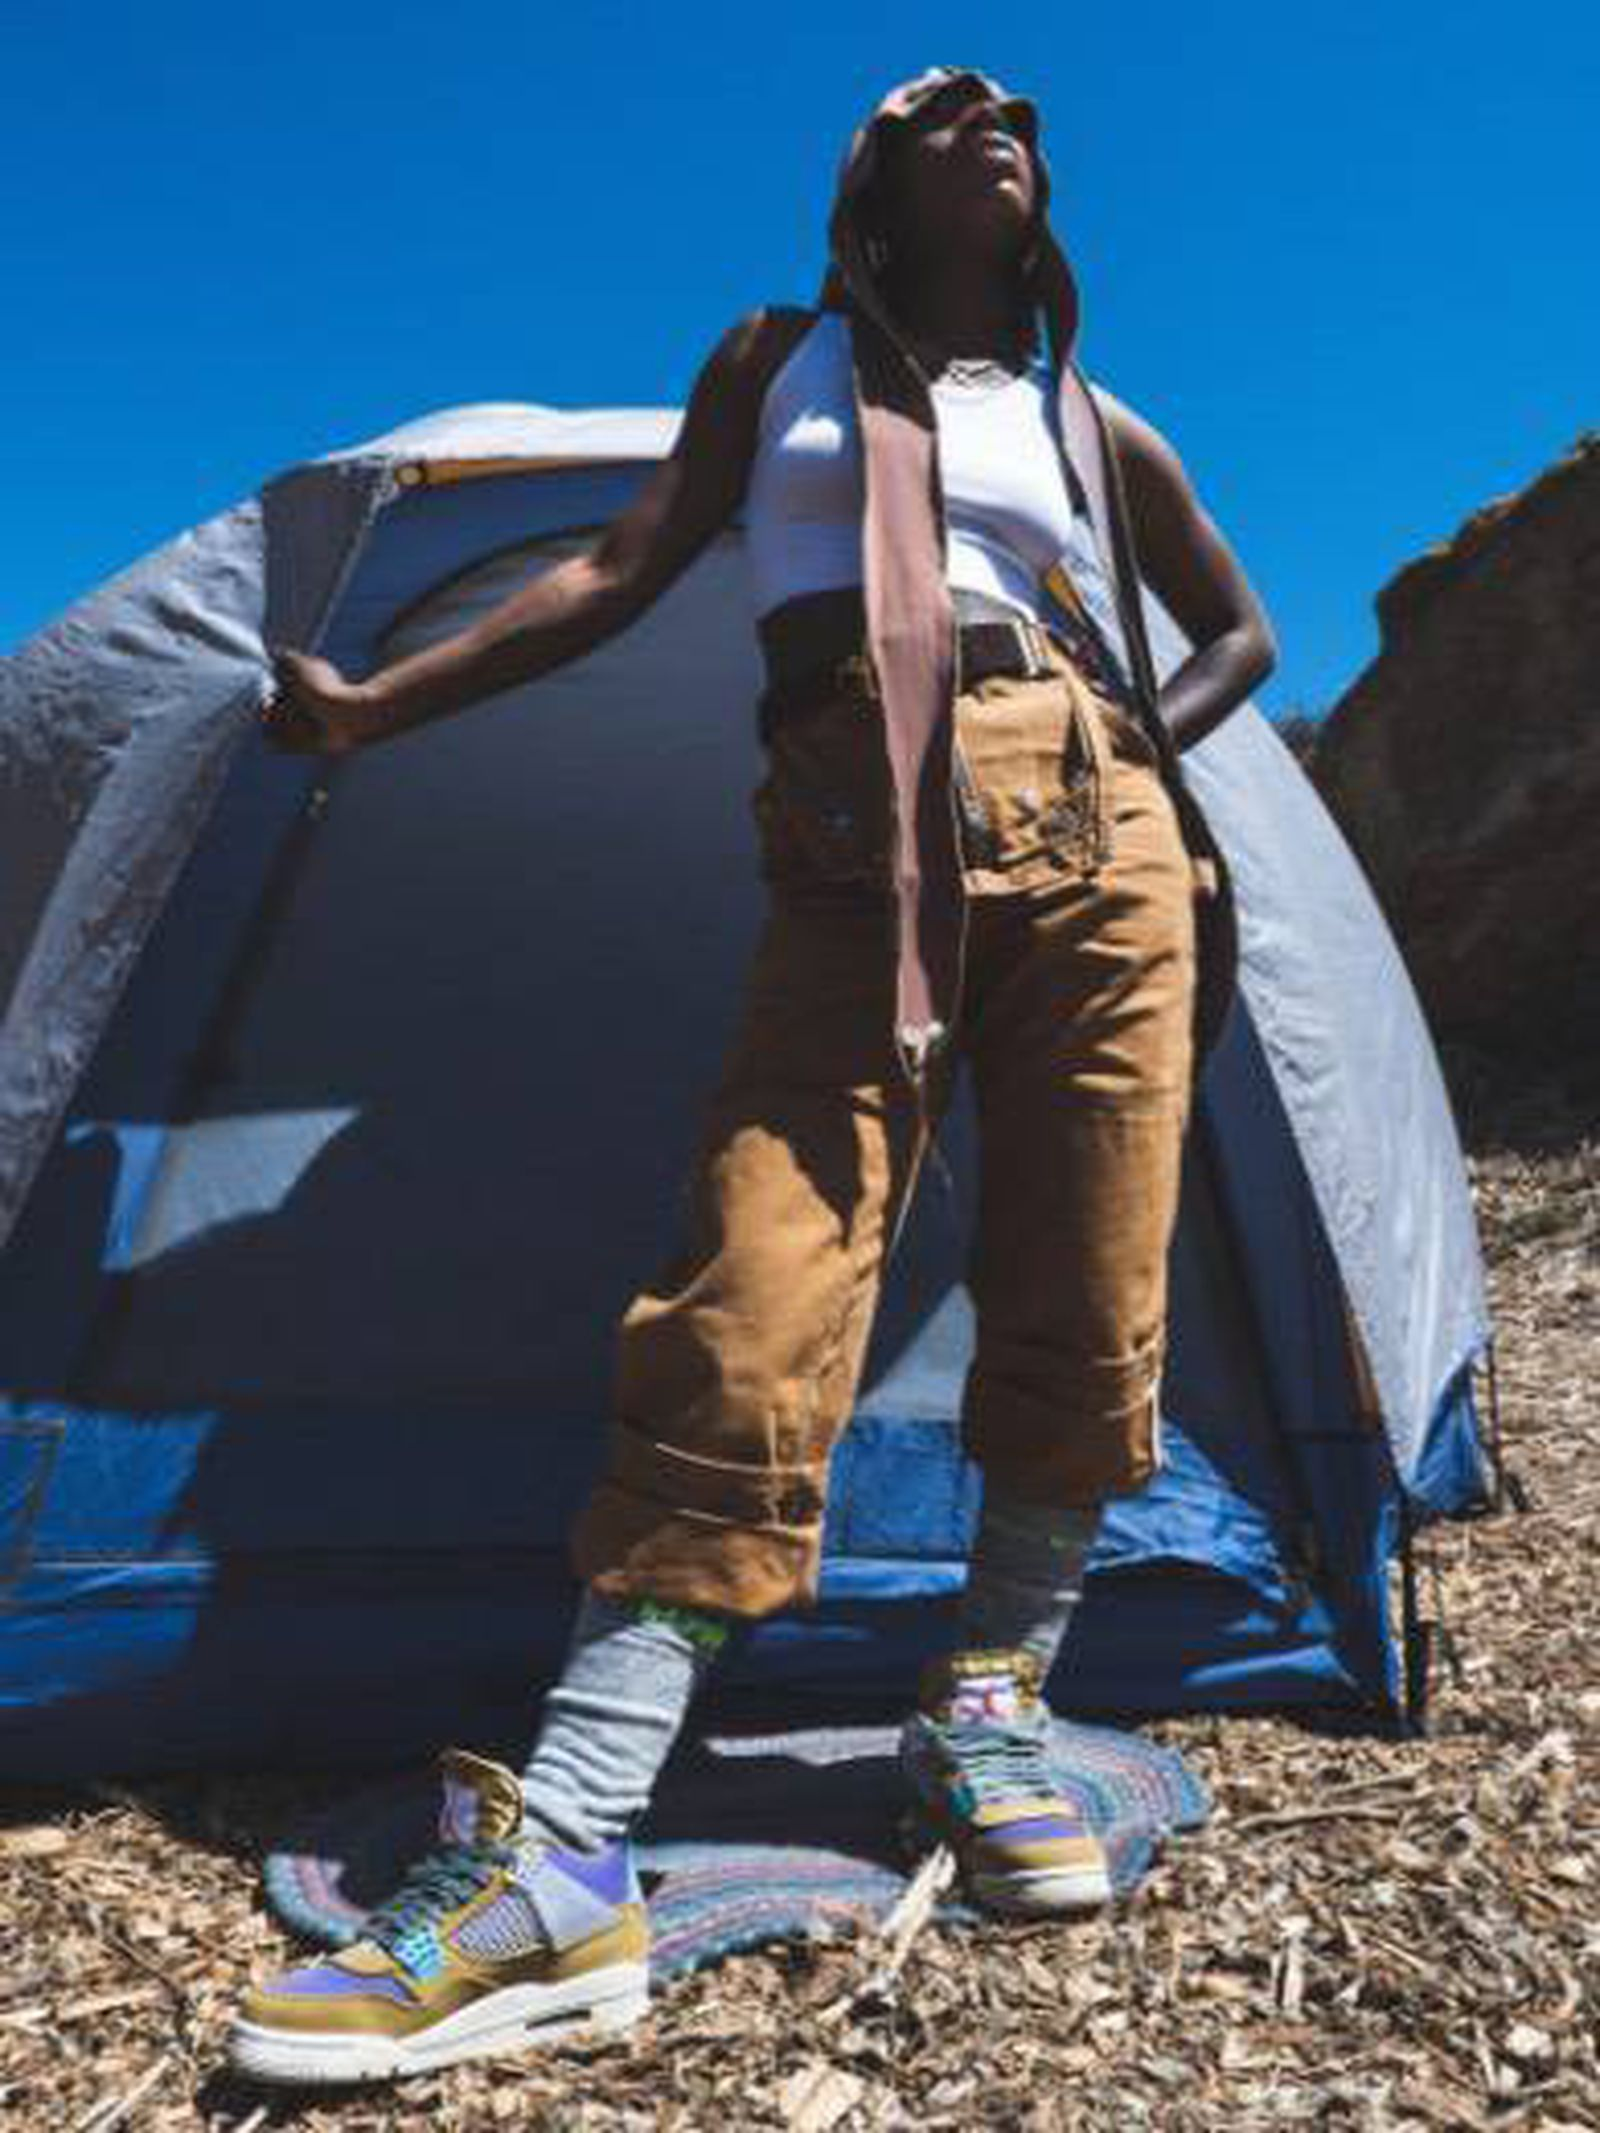 union-air-jordan-4-tent-and-trail-release-date-price-05